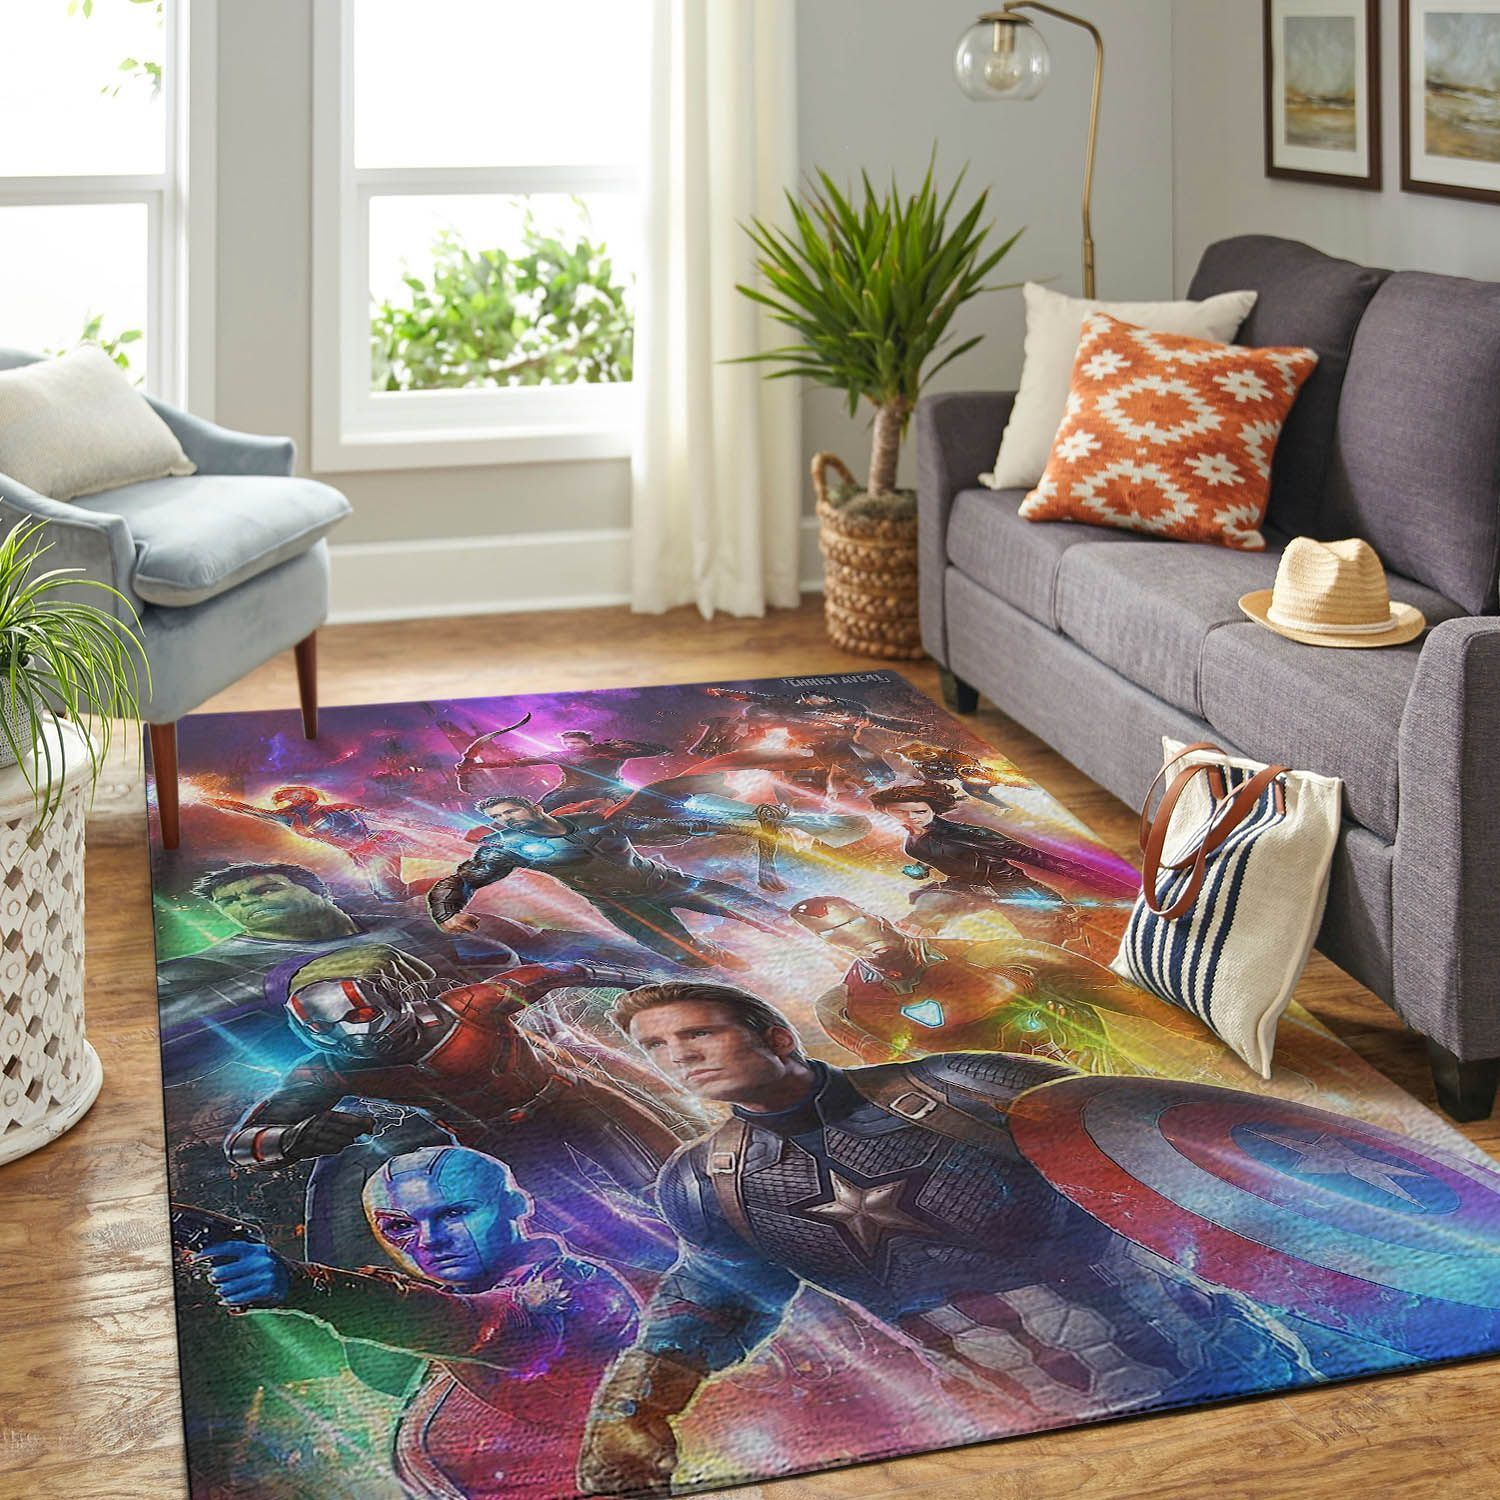 Amazon Avenger Endgame Living Room Area No5638 Rug